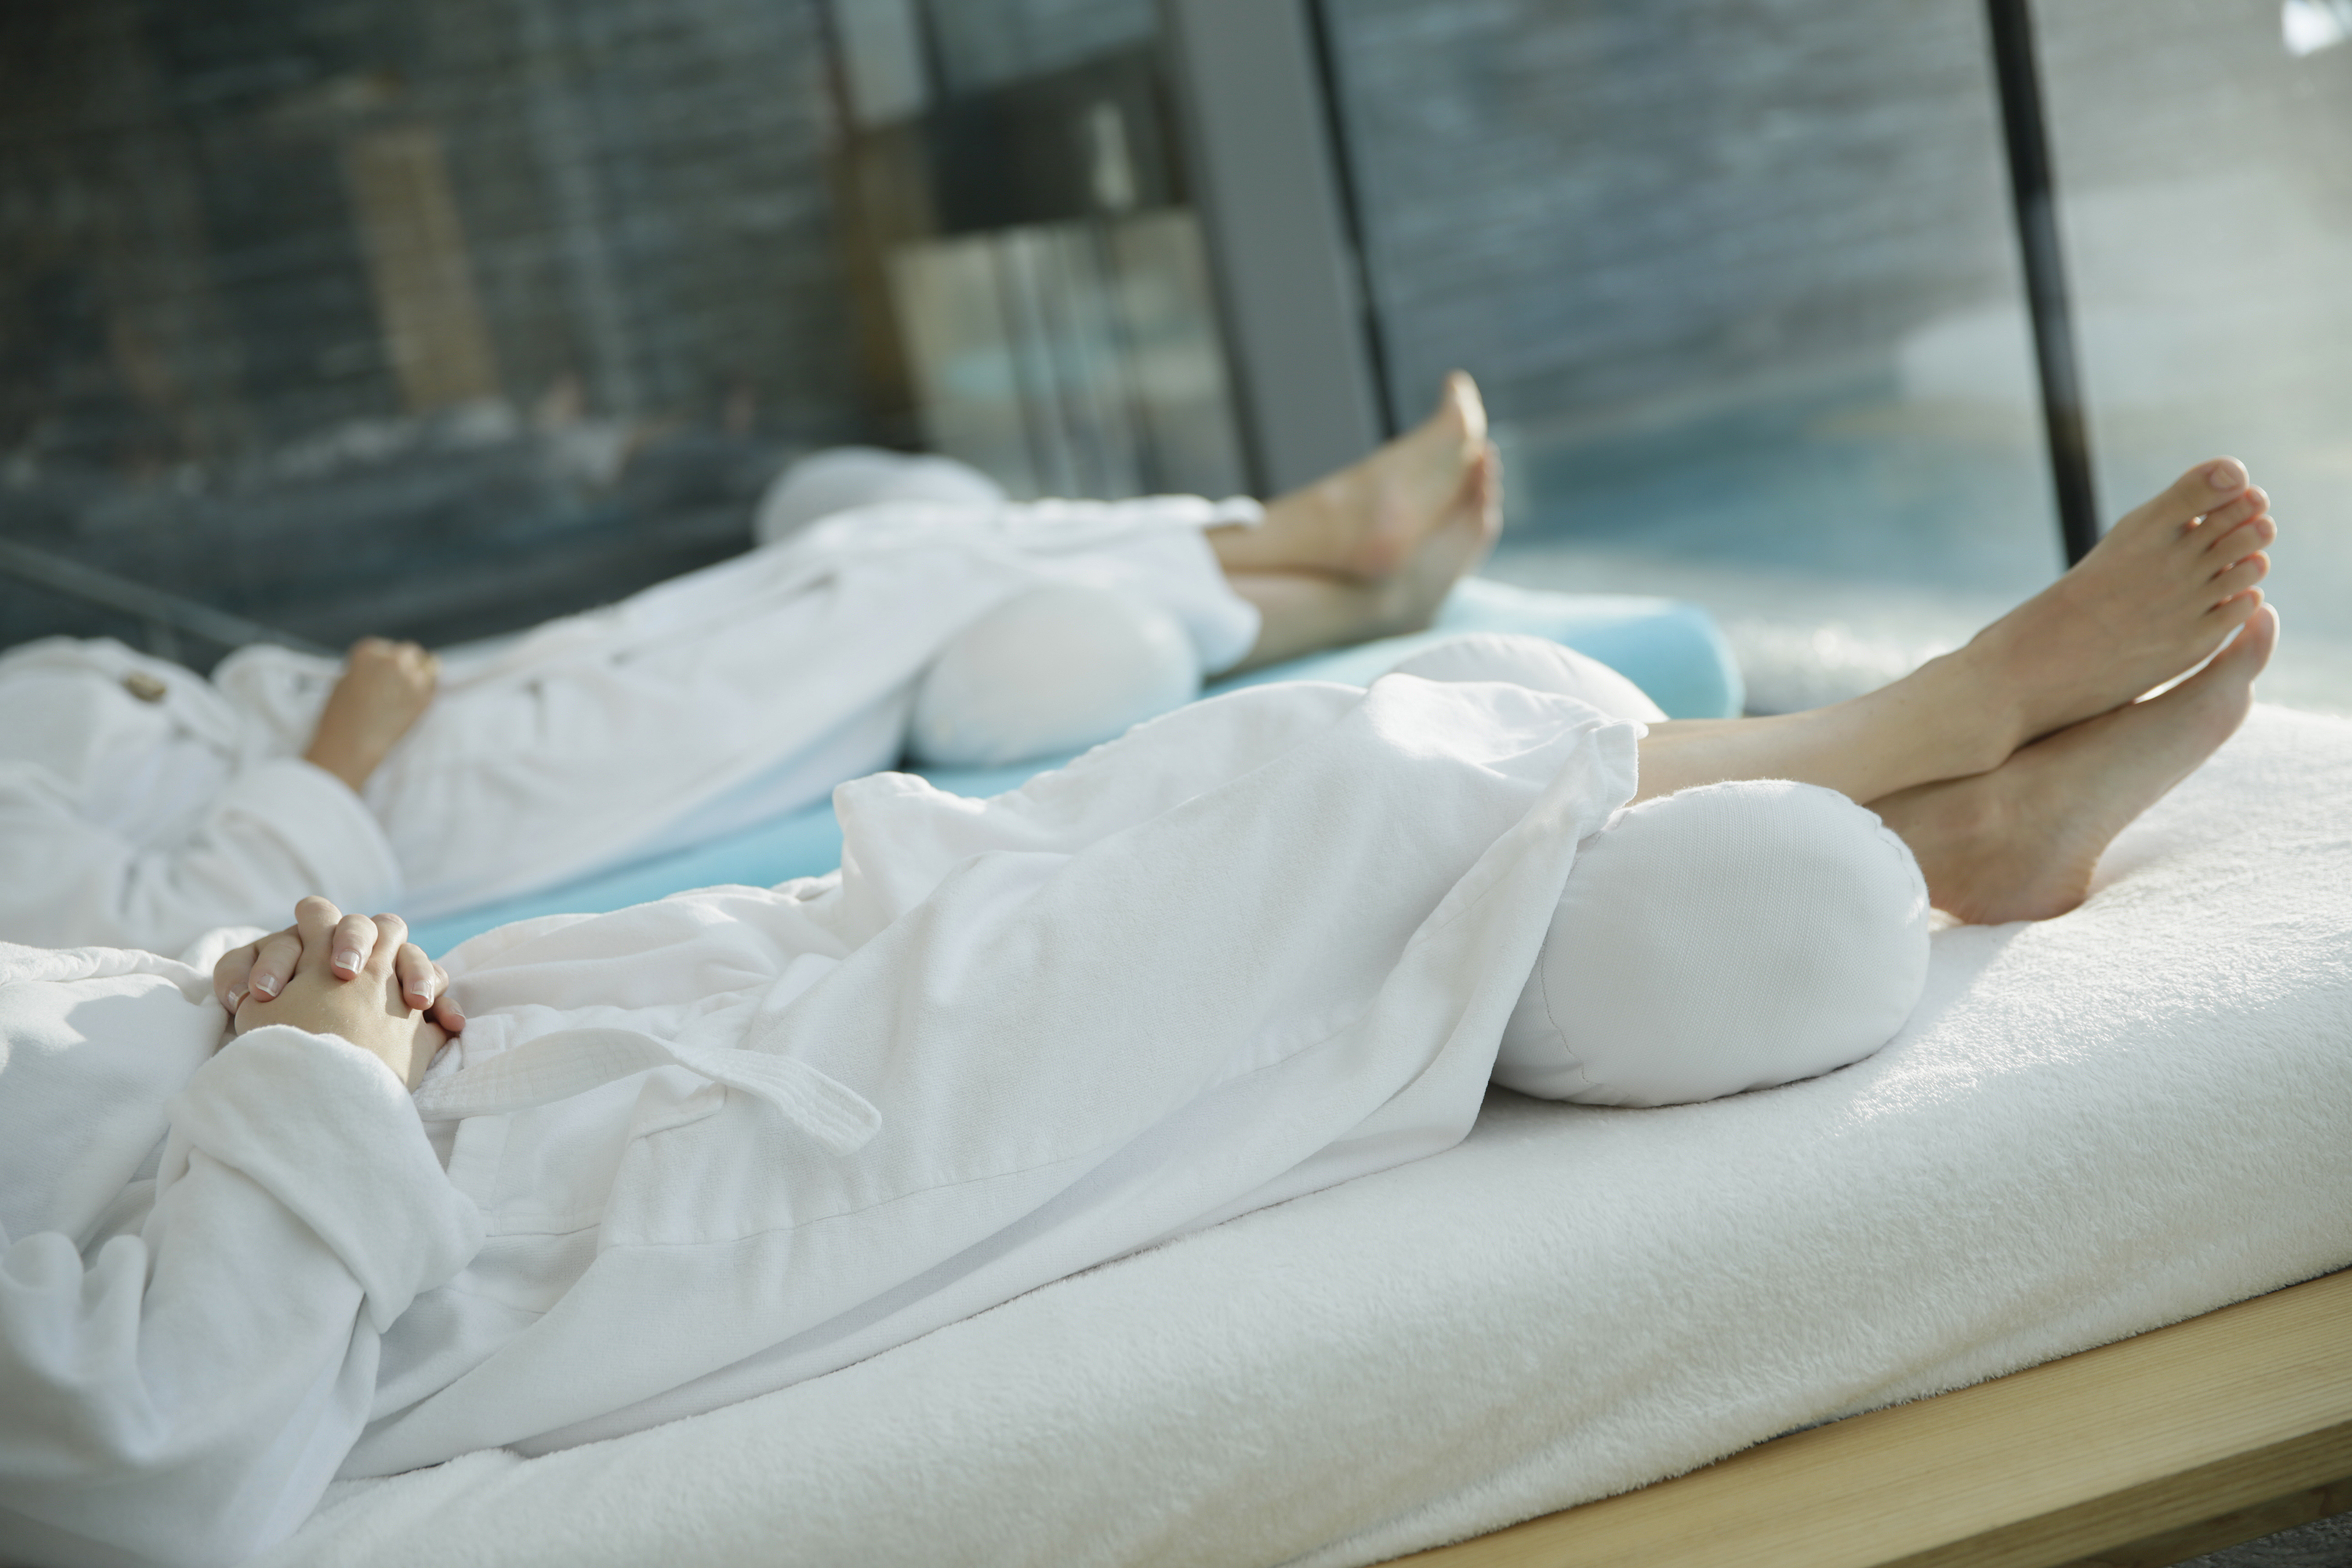 Hotel guests lying on loungers in relaxation room of a hotel, Tannheim, Tannheim valley, Tyrol, Austria